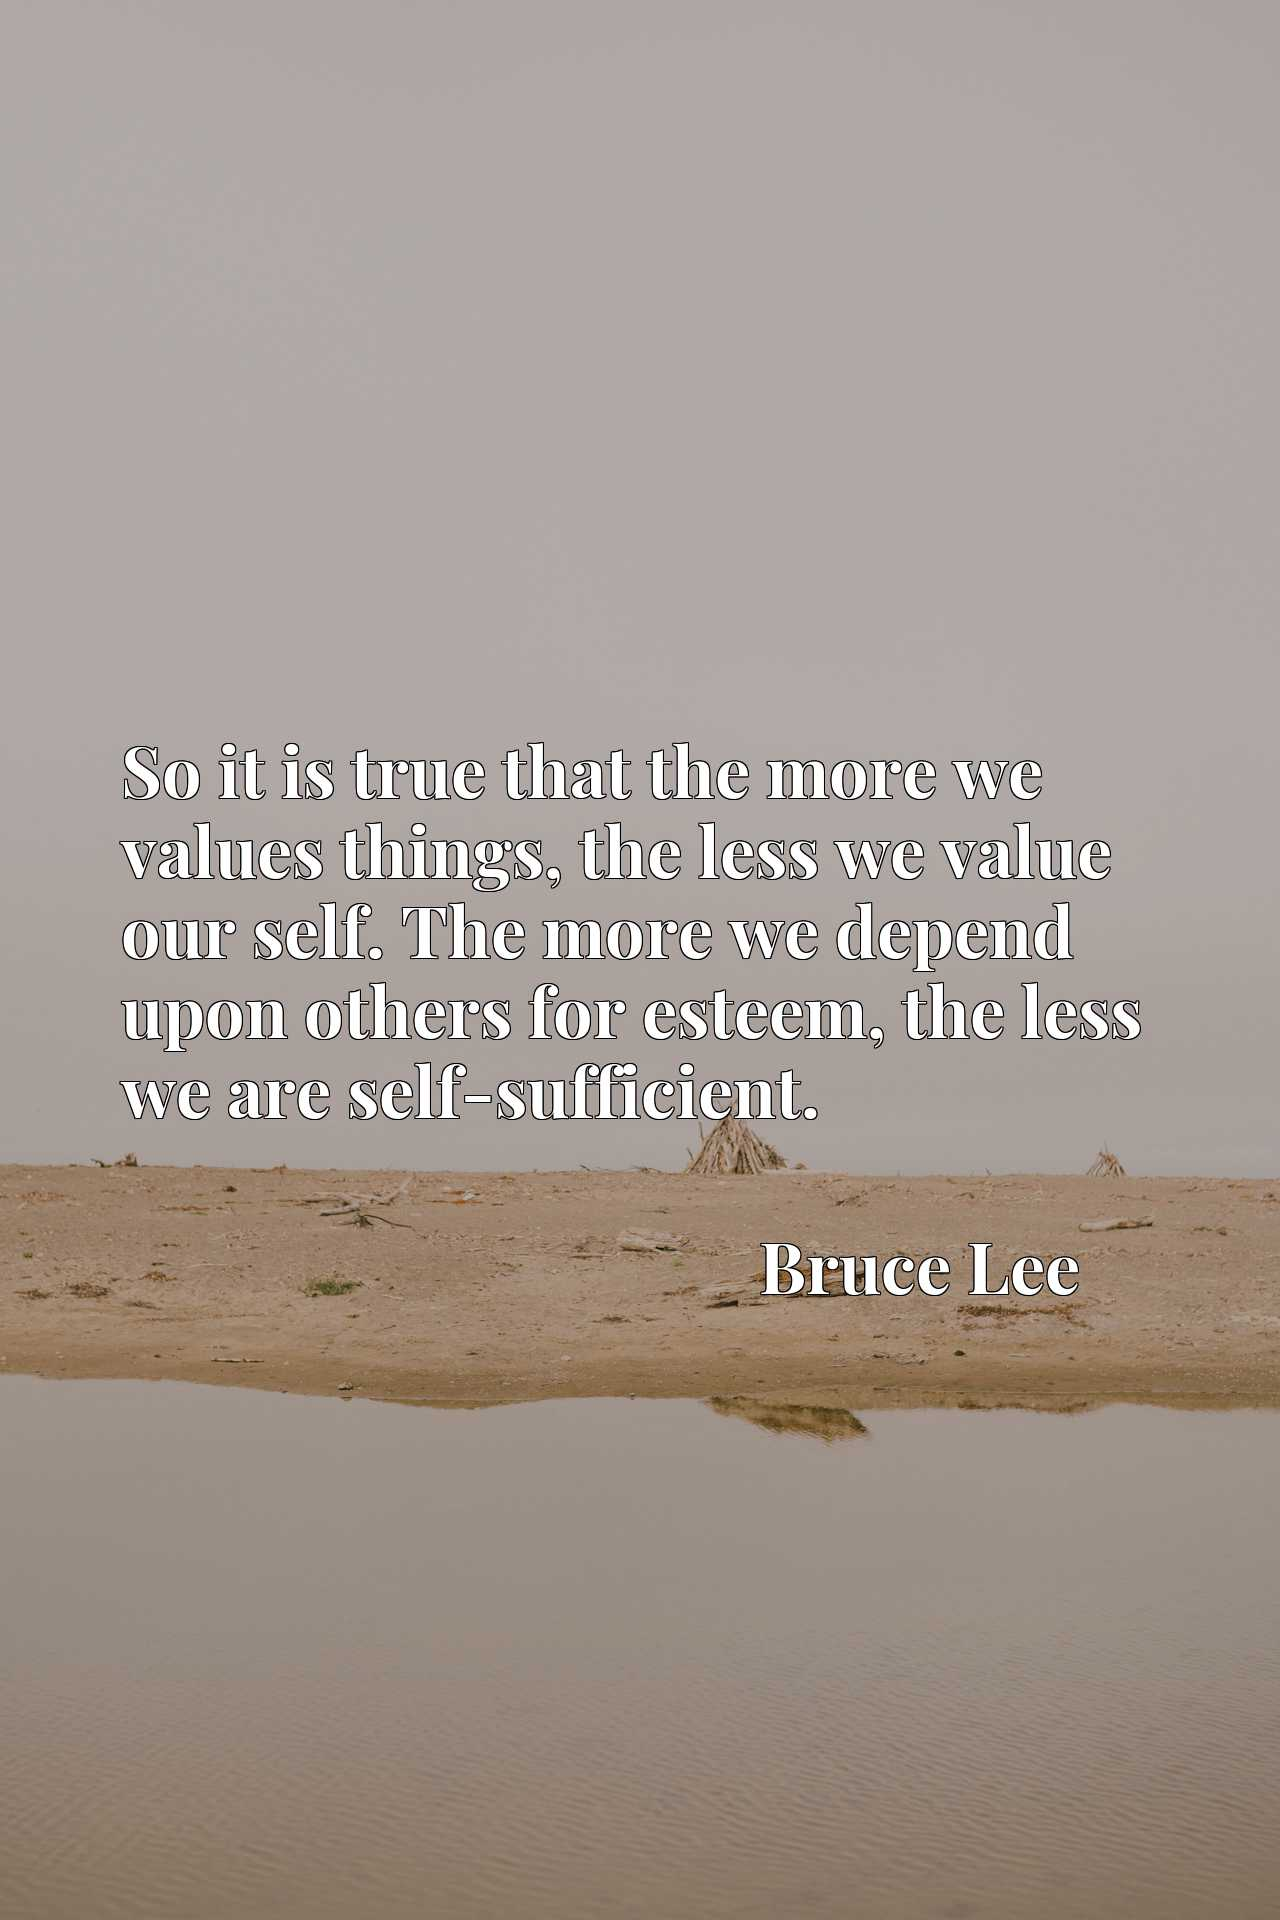 So it is true that the more we values things, the less we value our self. The more we depend upon others for esteem, the less we are self-sufficient.